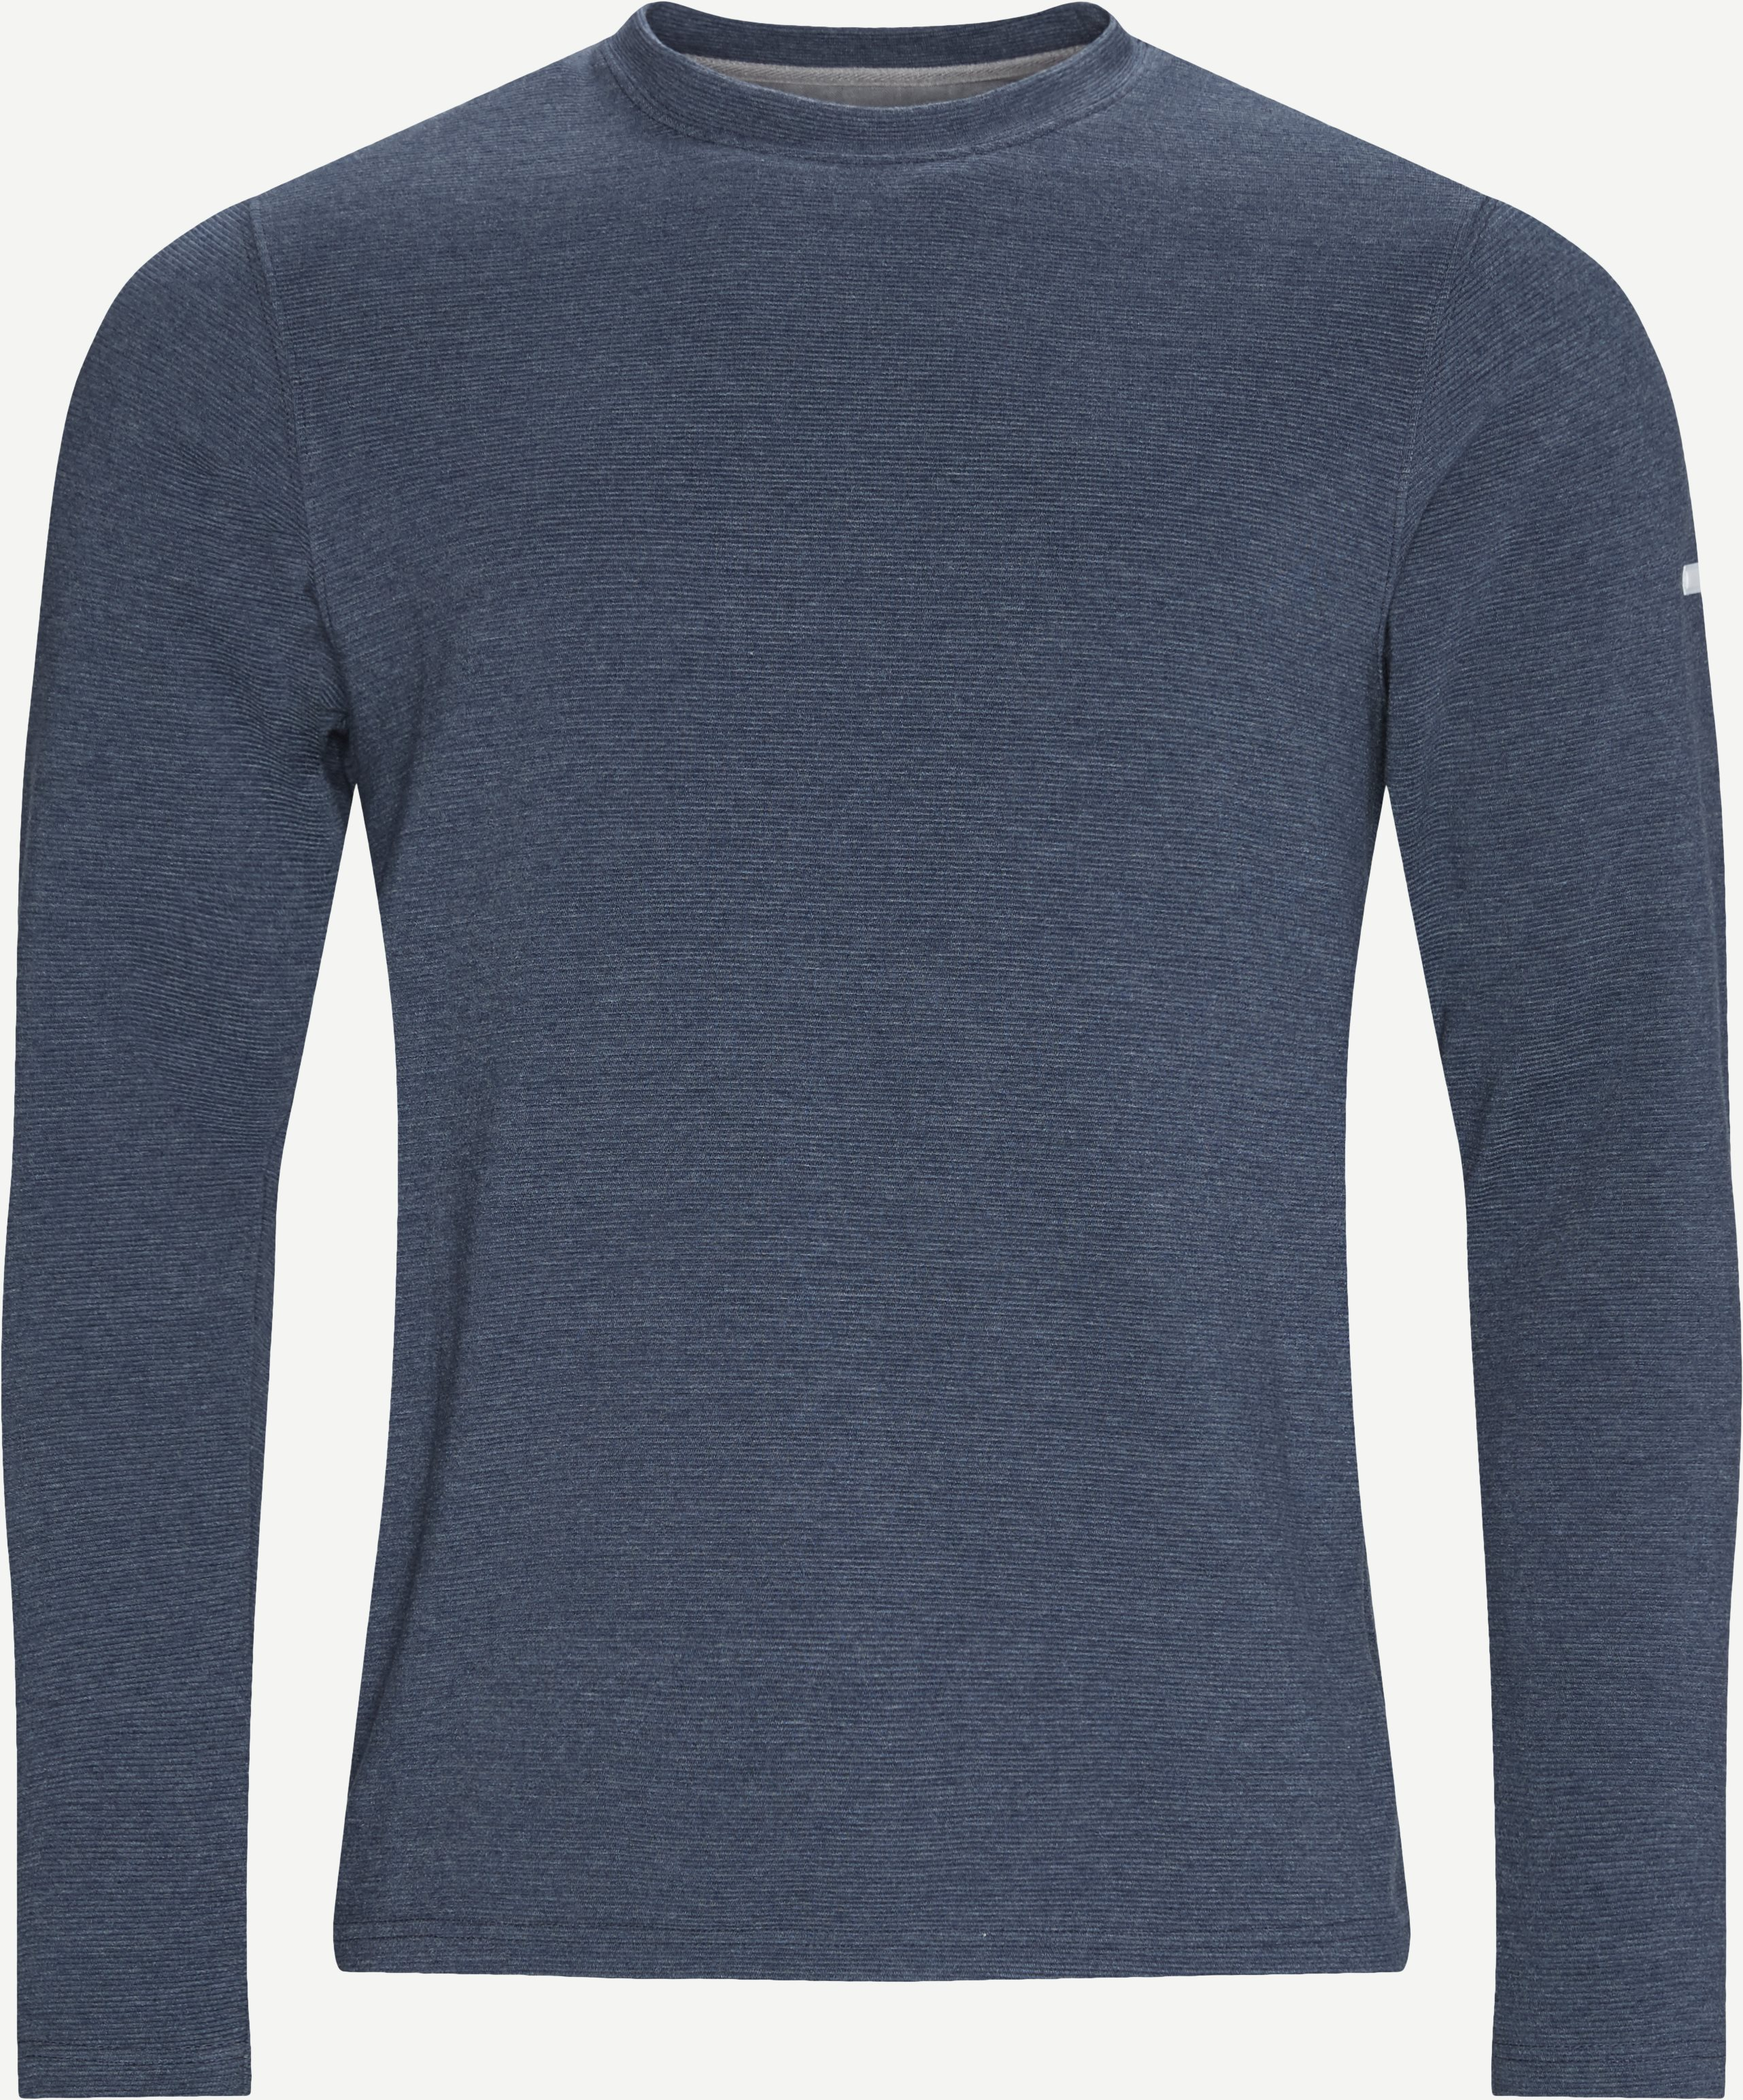 Sweatshirts - Regular - Jeans-Blau